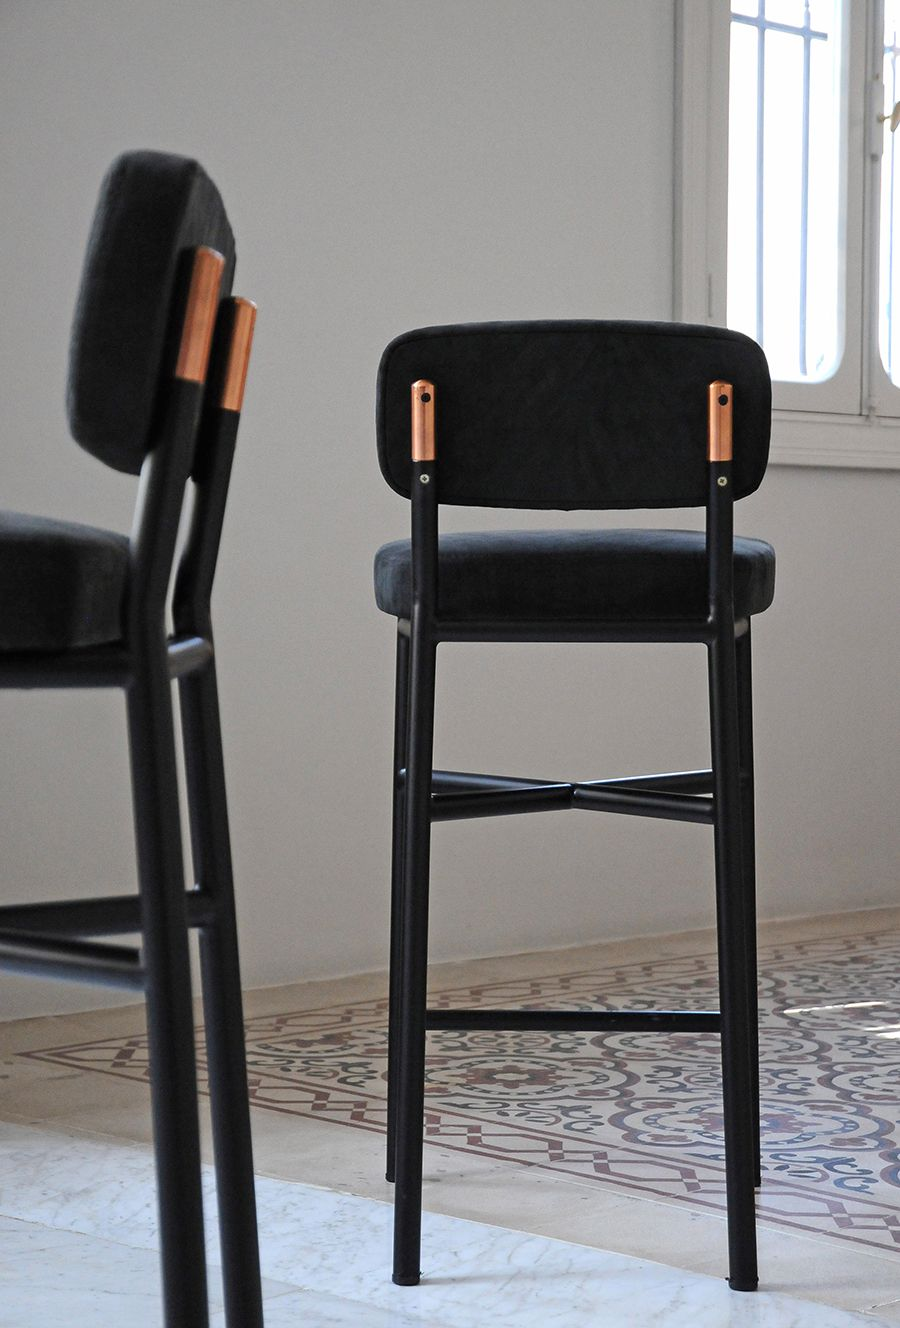 Banqueta Sandalyesi Stoel Stoelen Fauteuil Barkrukken Silla Para Barra Cadeira Stool Modern Tabouret De Moderne Bar Chair Can Be Repeatedly Remolded. Furniture Bar Chairs